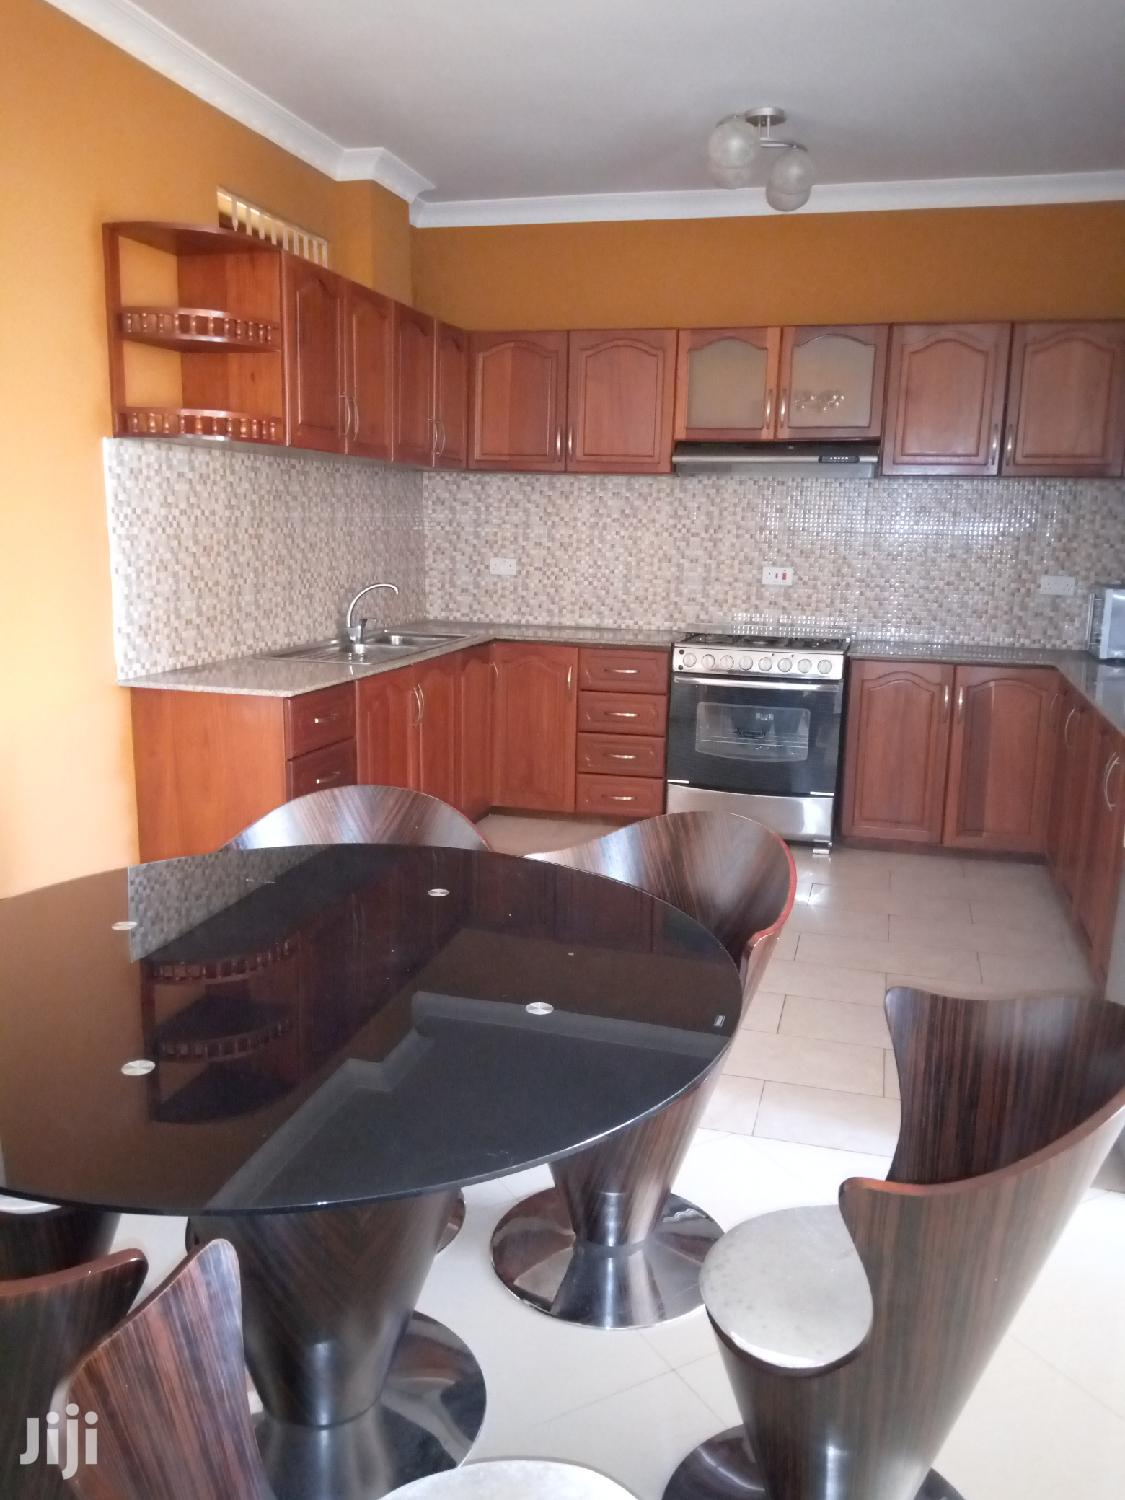 3 Bdrm Full Furnished For Sale Msasani. | Houses & Apartments For Sale for sale in Kinondoni, Dar es Salaam, Tanzania